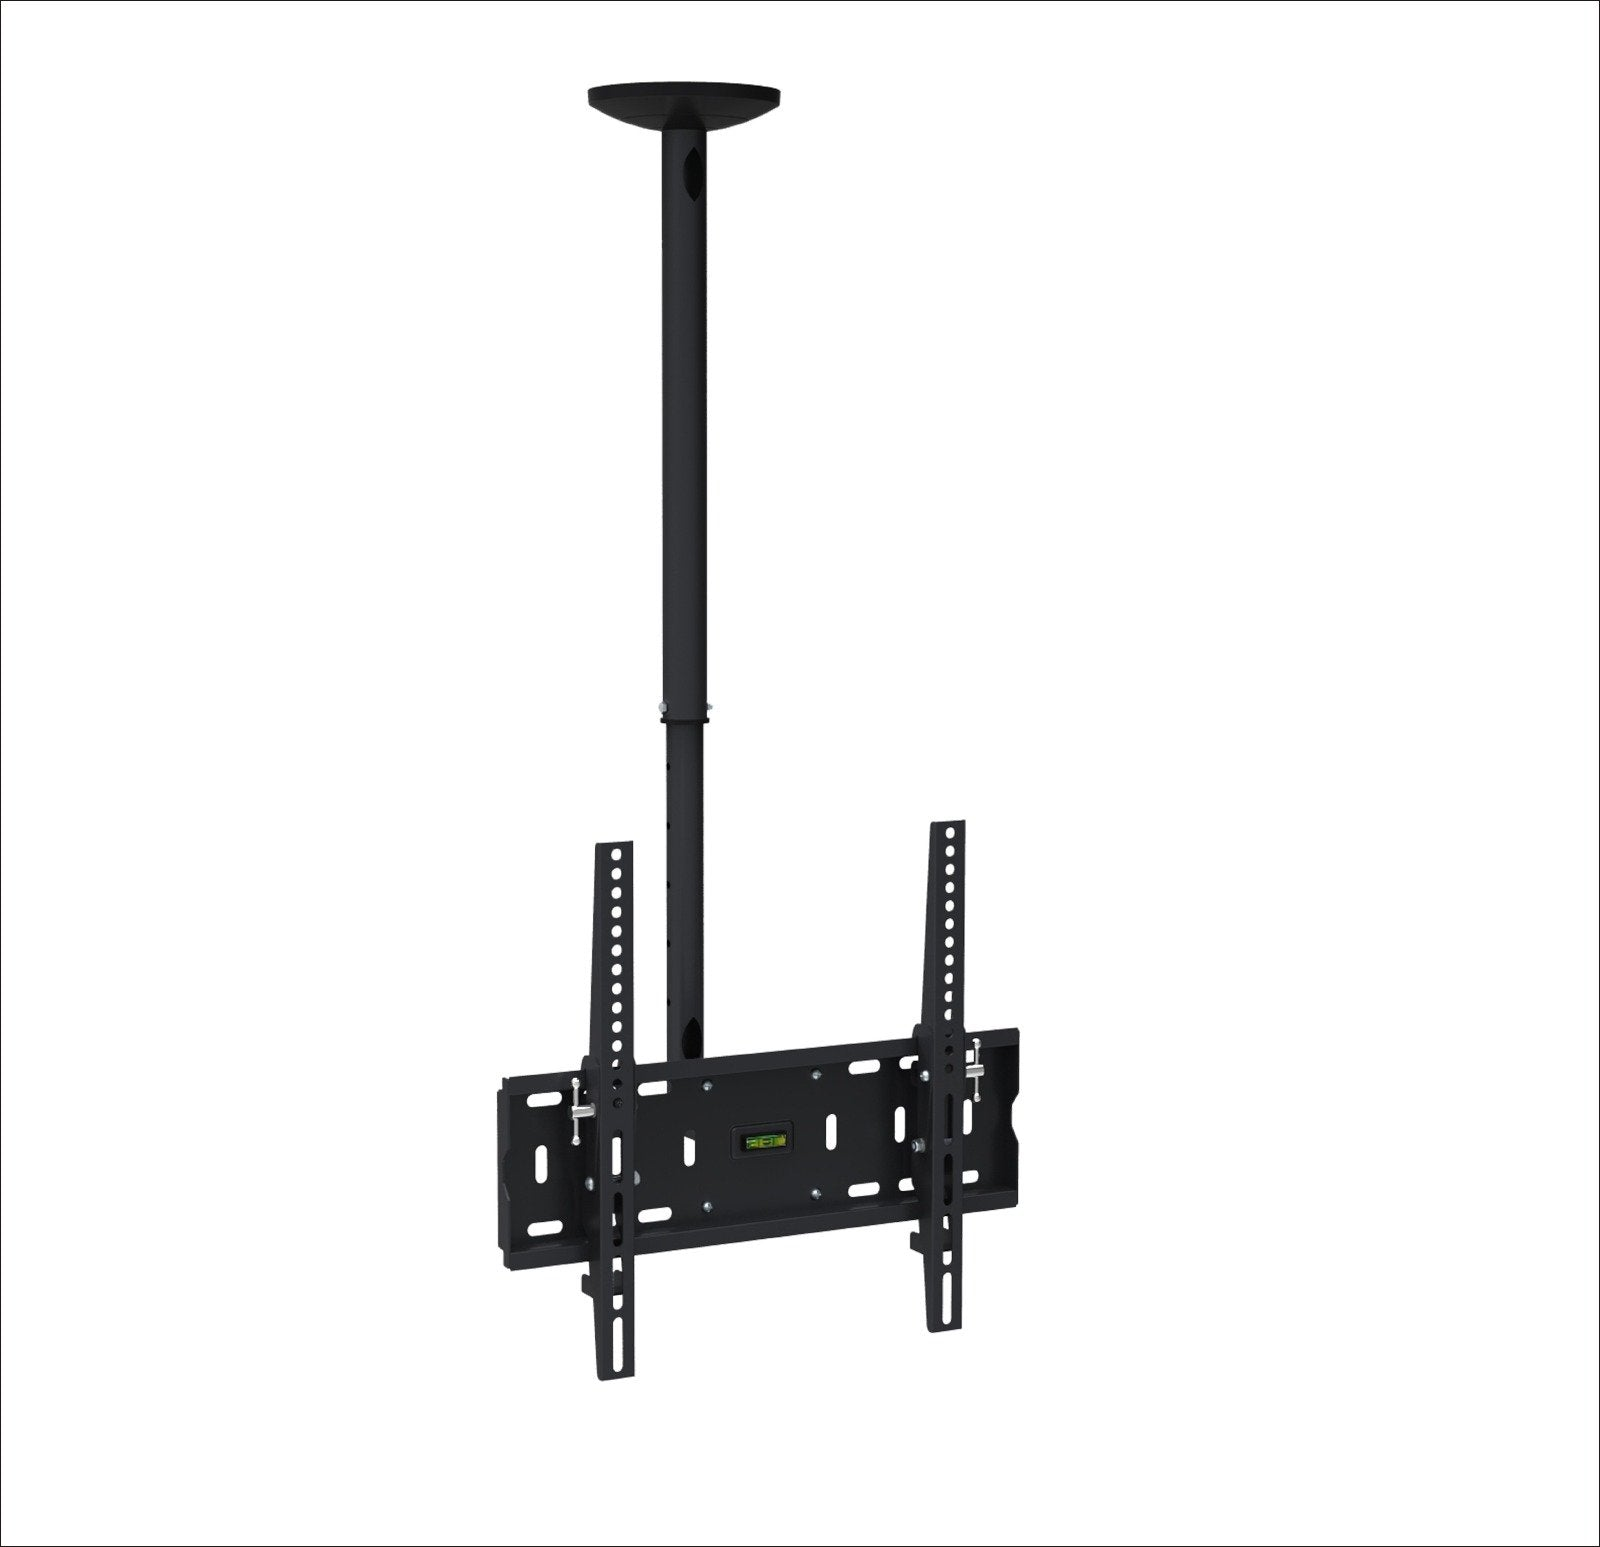 "Control 2 Smart 32"" - 55"" TV Celling Mount C2S-209/C"